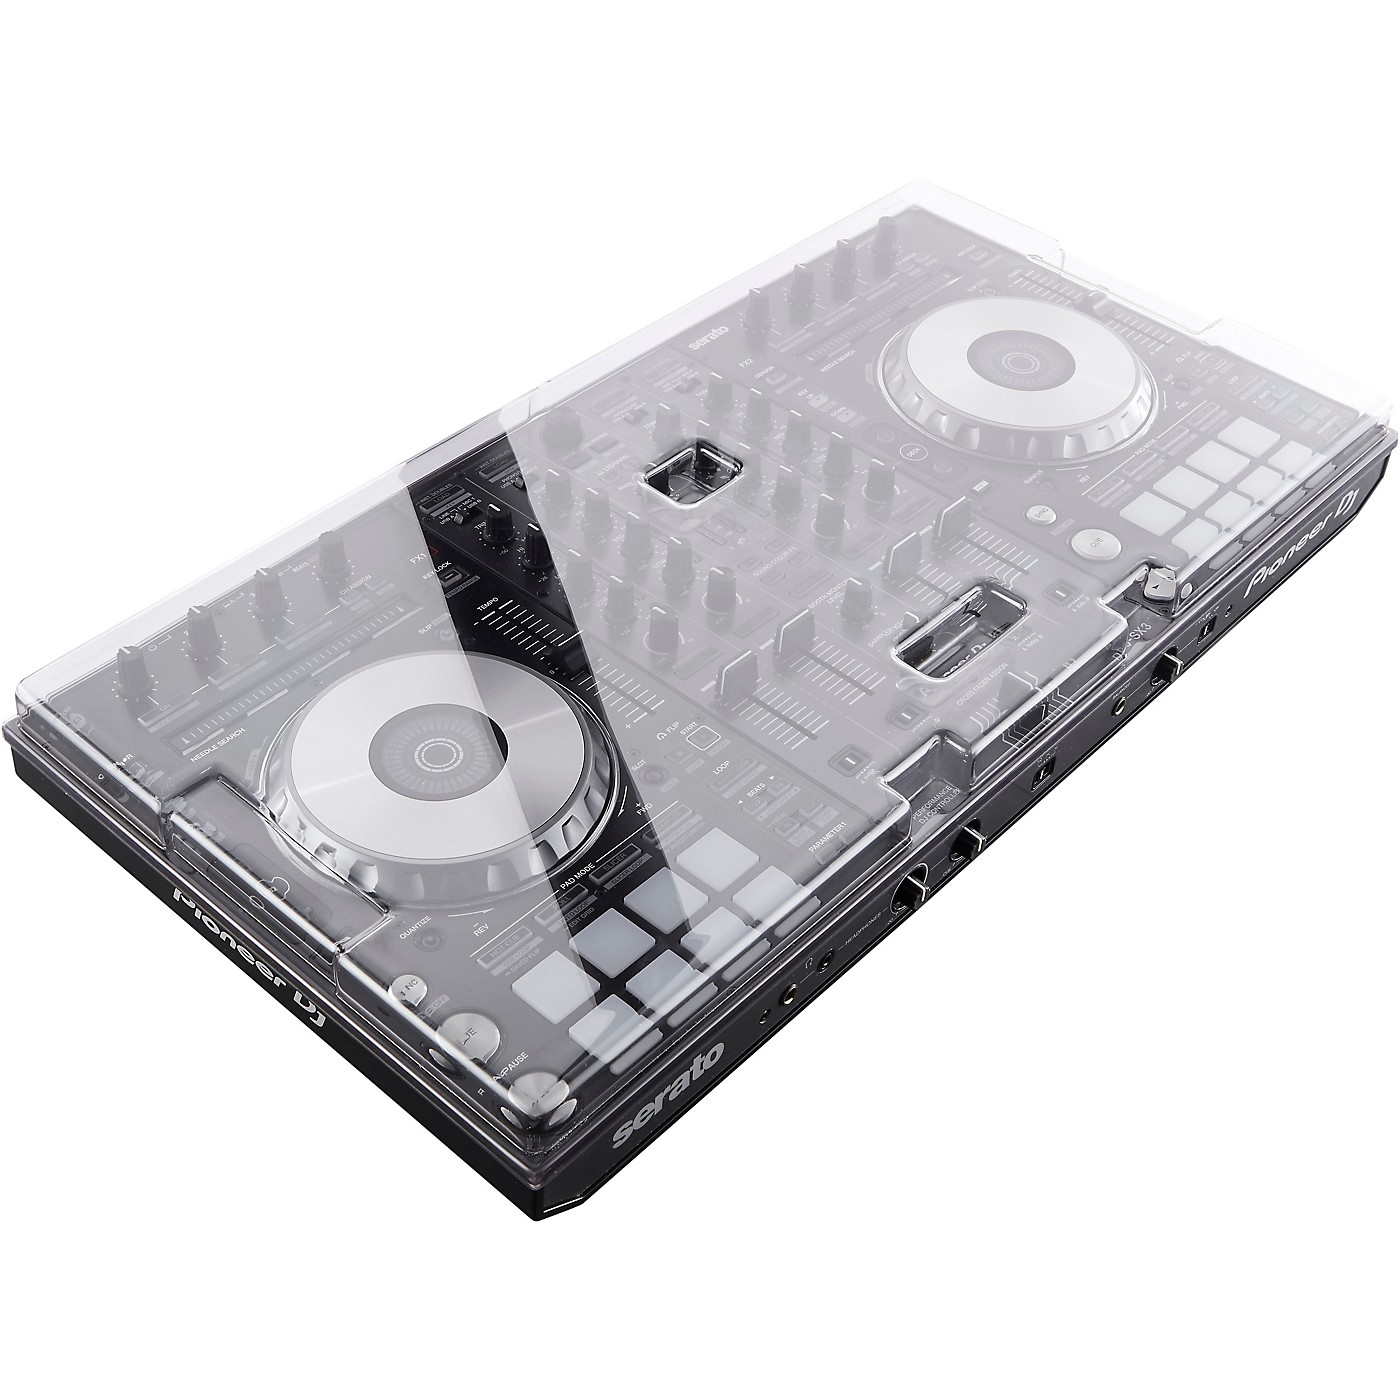 Decksaver Professional Clear Polycarbonate Cover for Pioneer DDJ-SX3 DJ Controller thumbnail